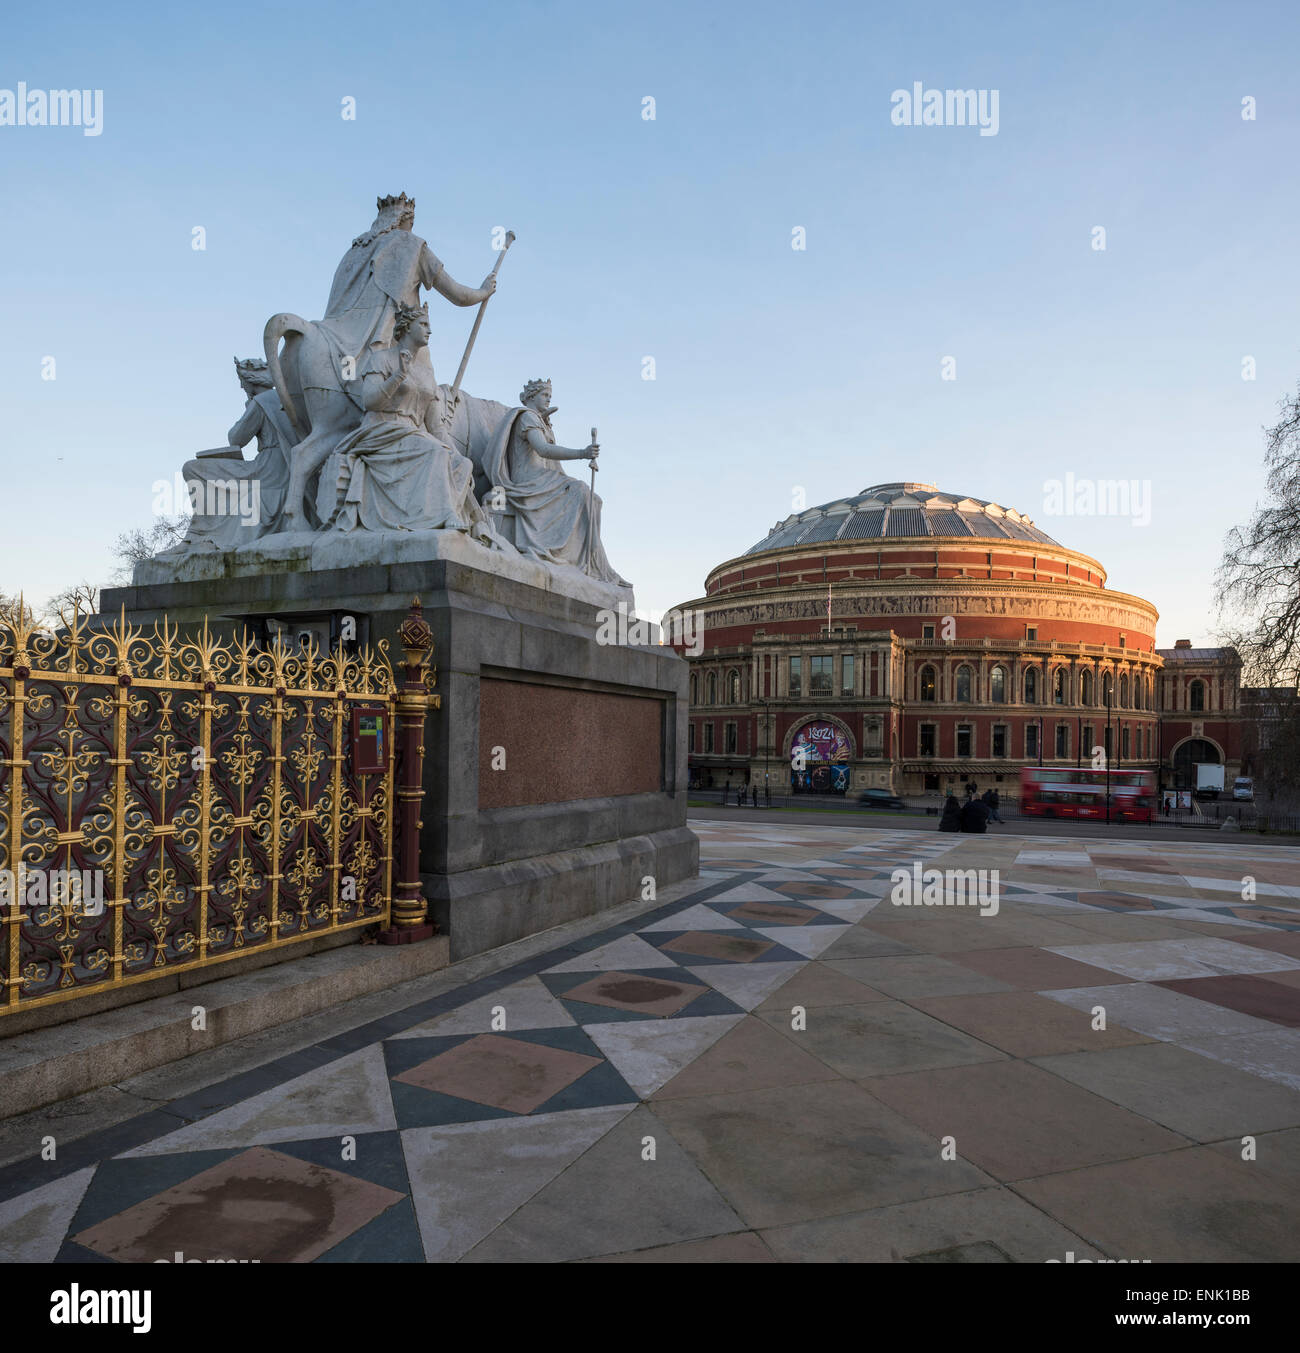 Exterior of the Royal Albert Hall from The Albert Memorial, Kensington, London, England, United Kingdom, Europe - Stock Image